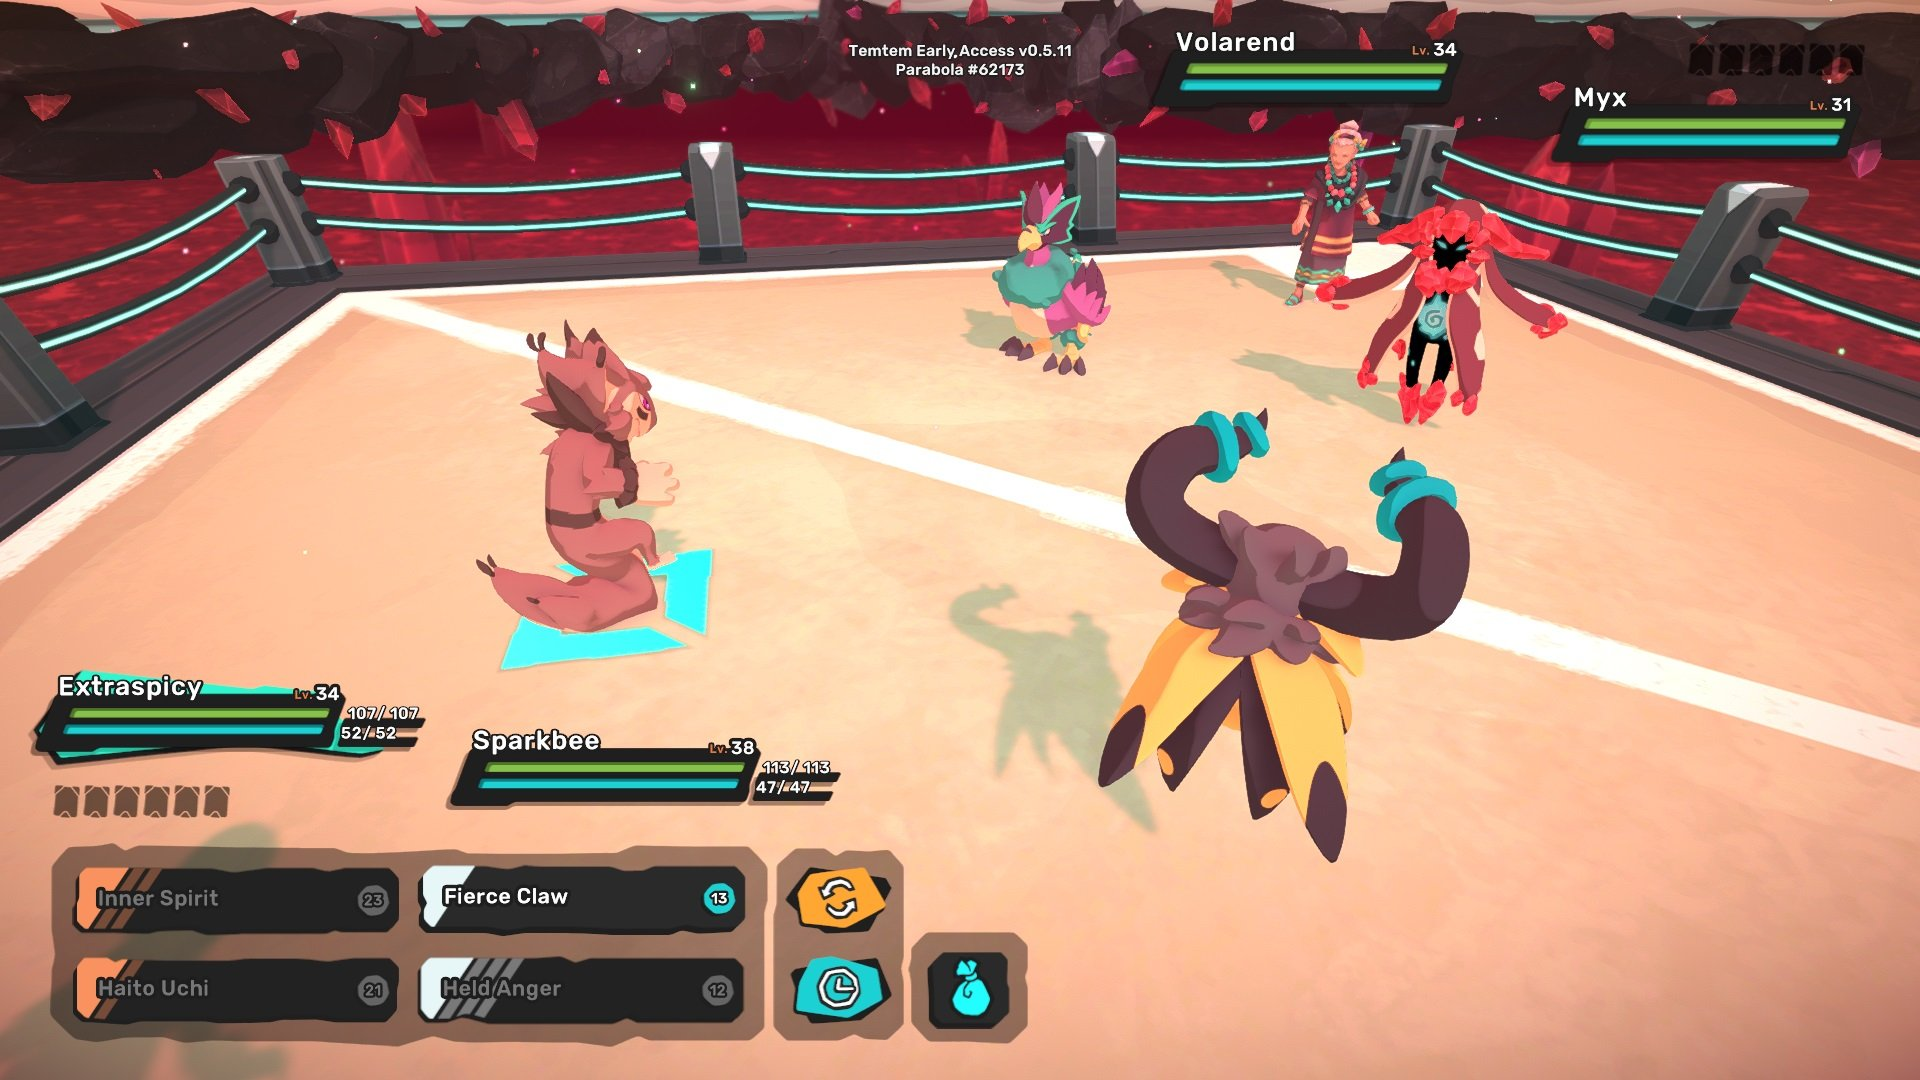 You'll want to strategize which Temtem to send out first to avoid losing valuable Temtem early on in the fight against Yareni.